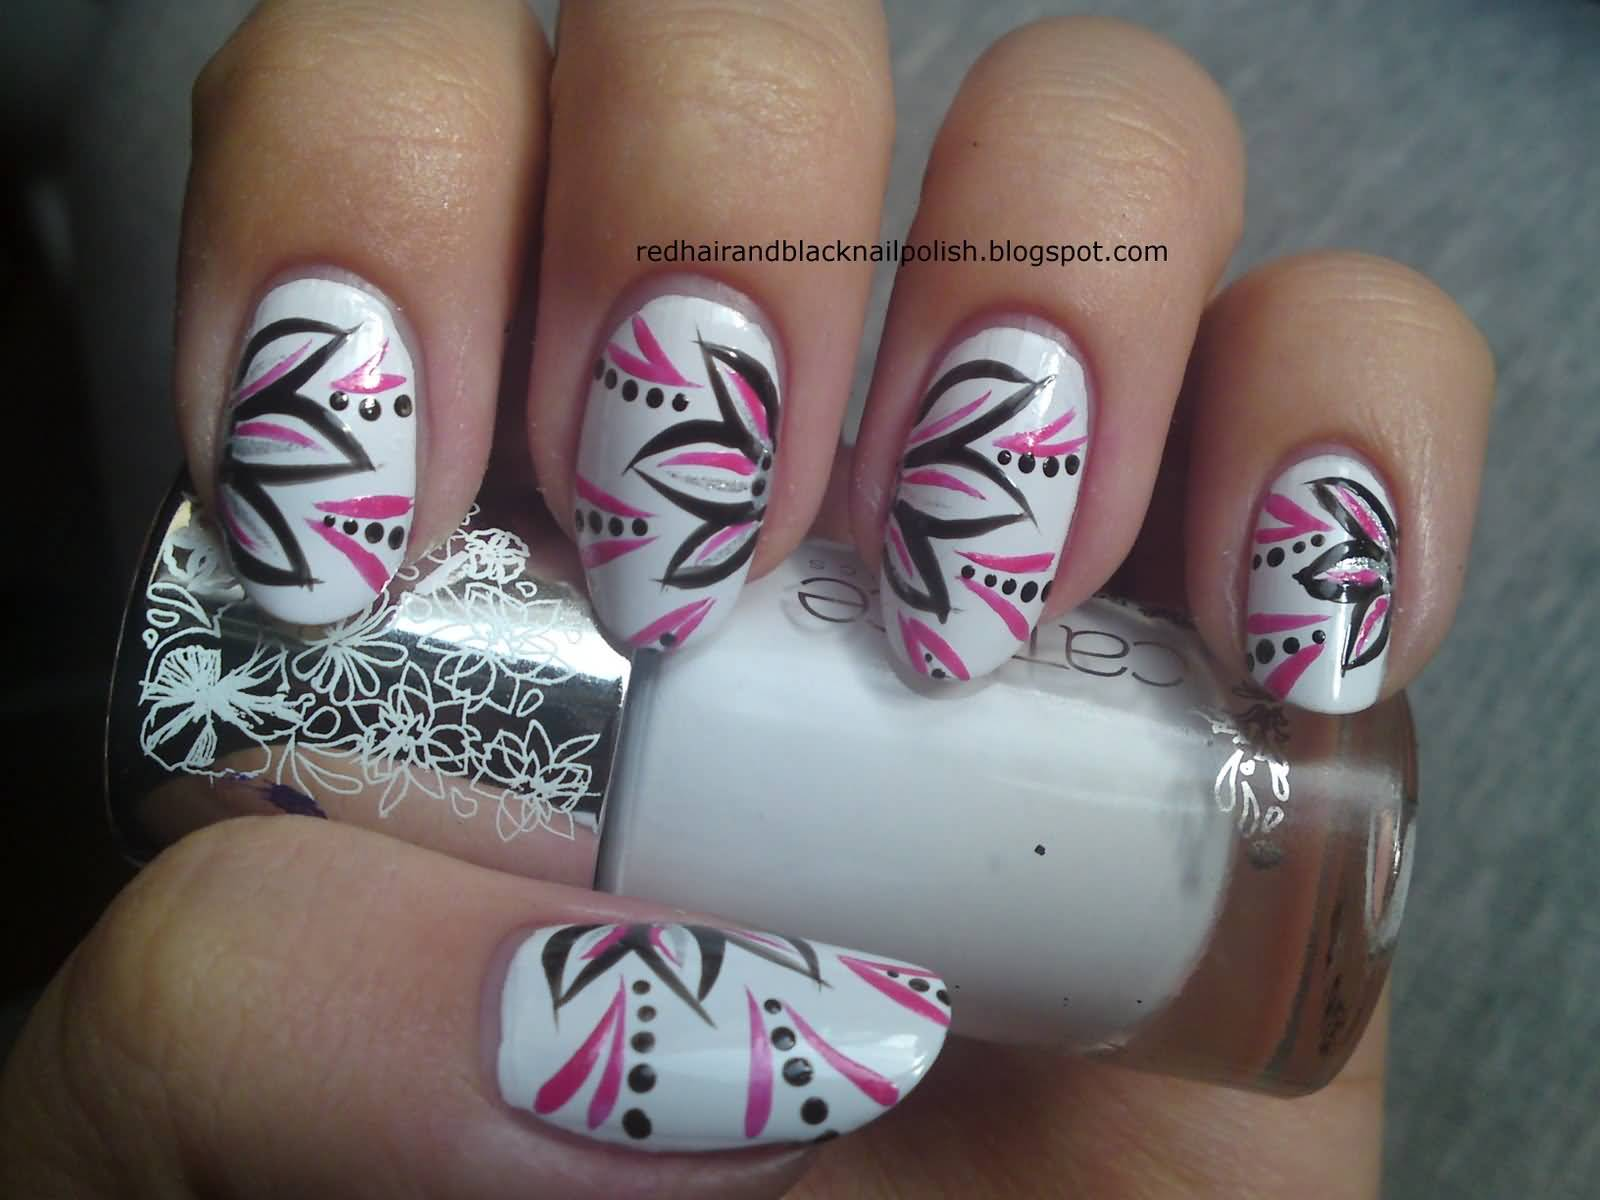 Nail art black white pink beautiful pink and black nail designs nail art black white pink most beautiful flowers nail art design ideas prinsesfo Gallery